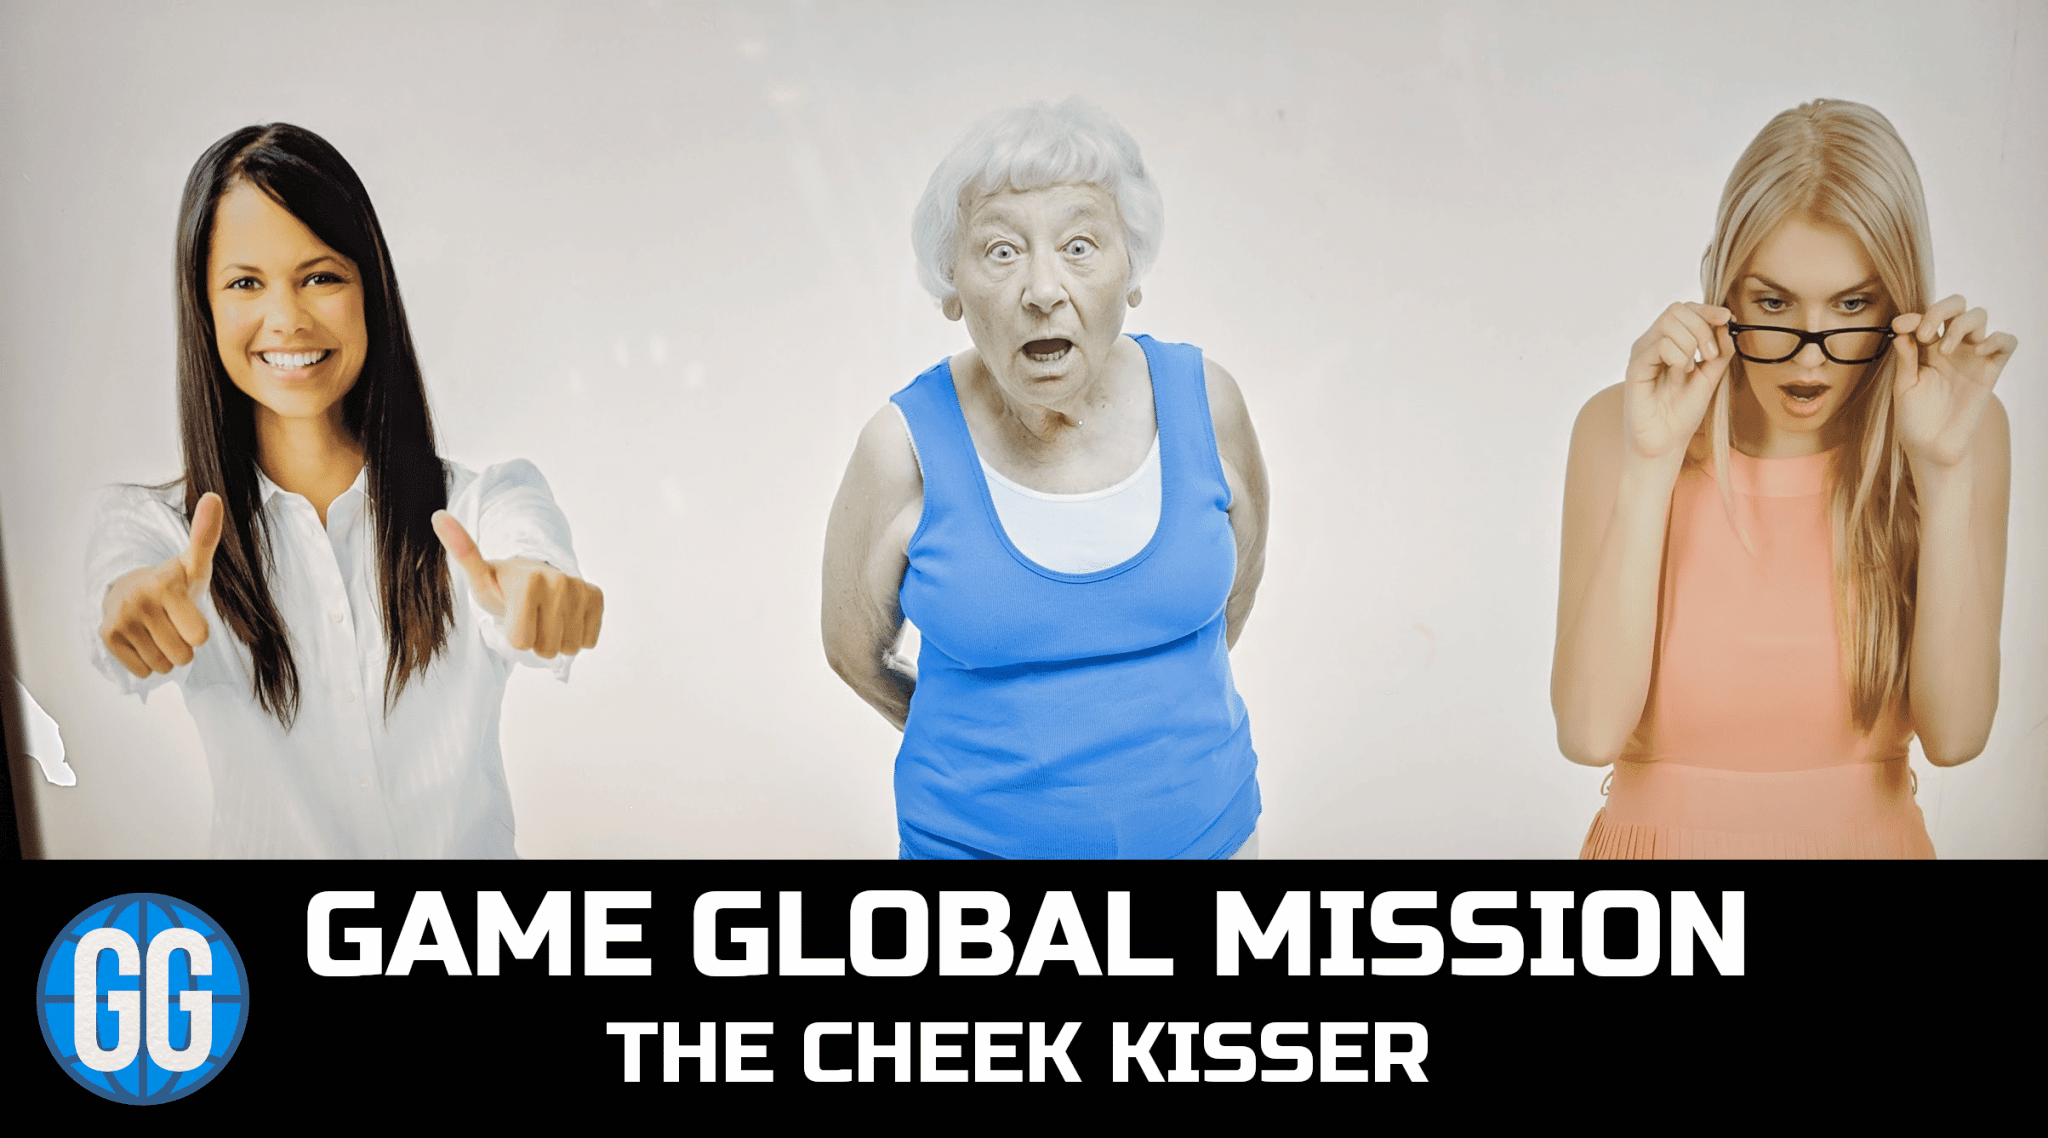 Mission 2: The Cheek Kisser